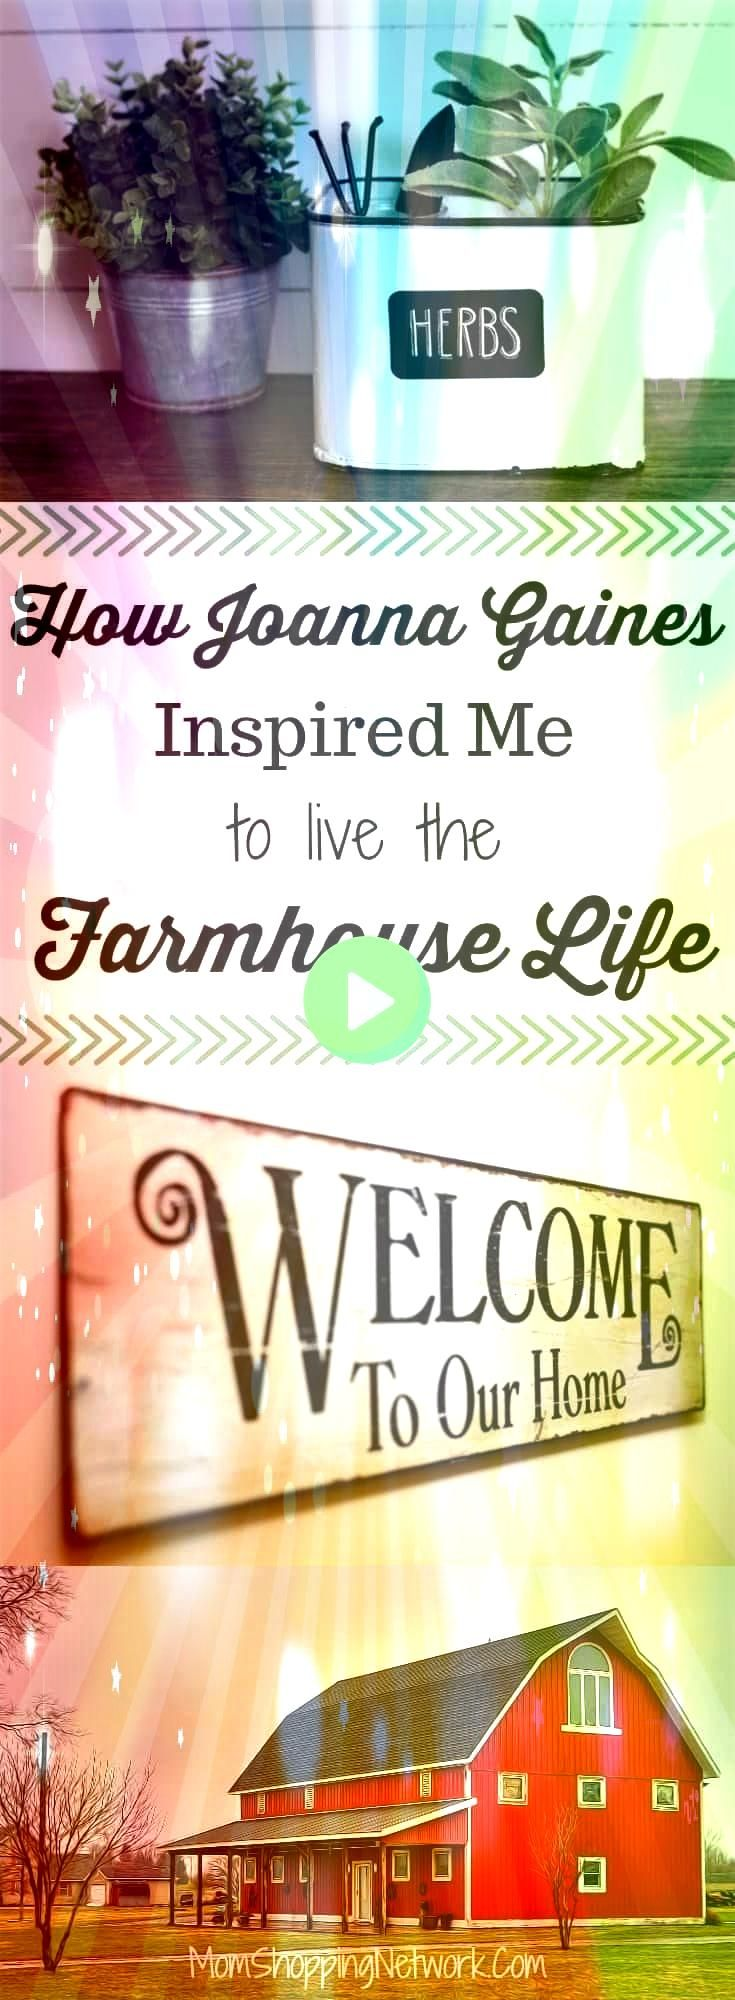 is how Joanna Gaines Inspired Me to Live the Farmhouse Life and You can to This is how Joanna Gaines Inspired Me to Live the Farmhouse Life and You can to This is how Joa...